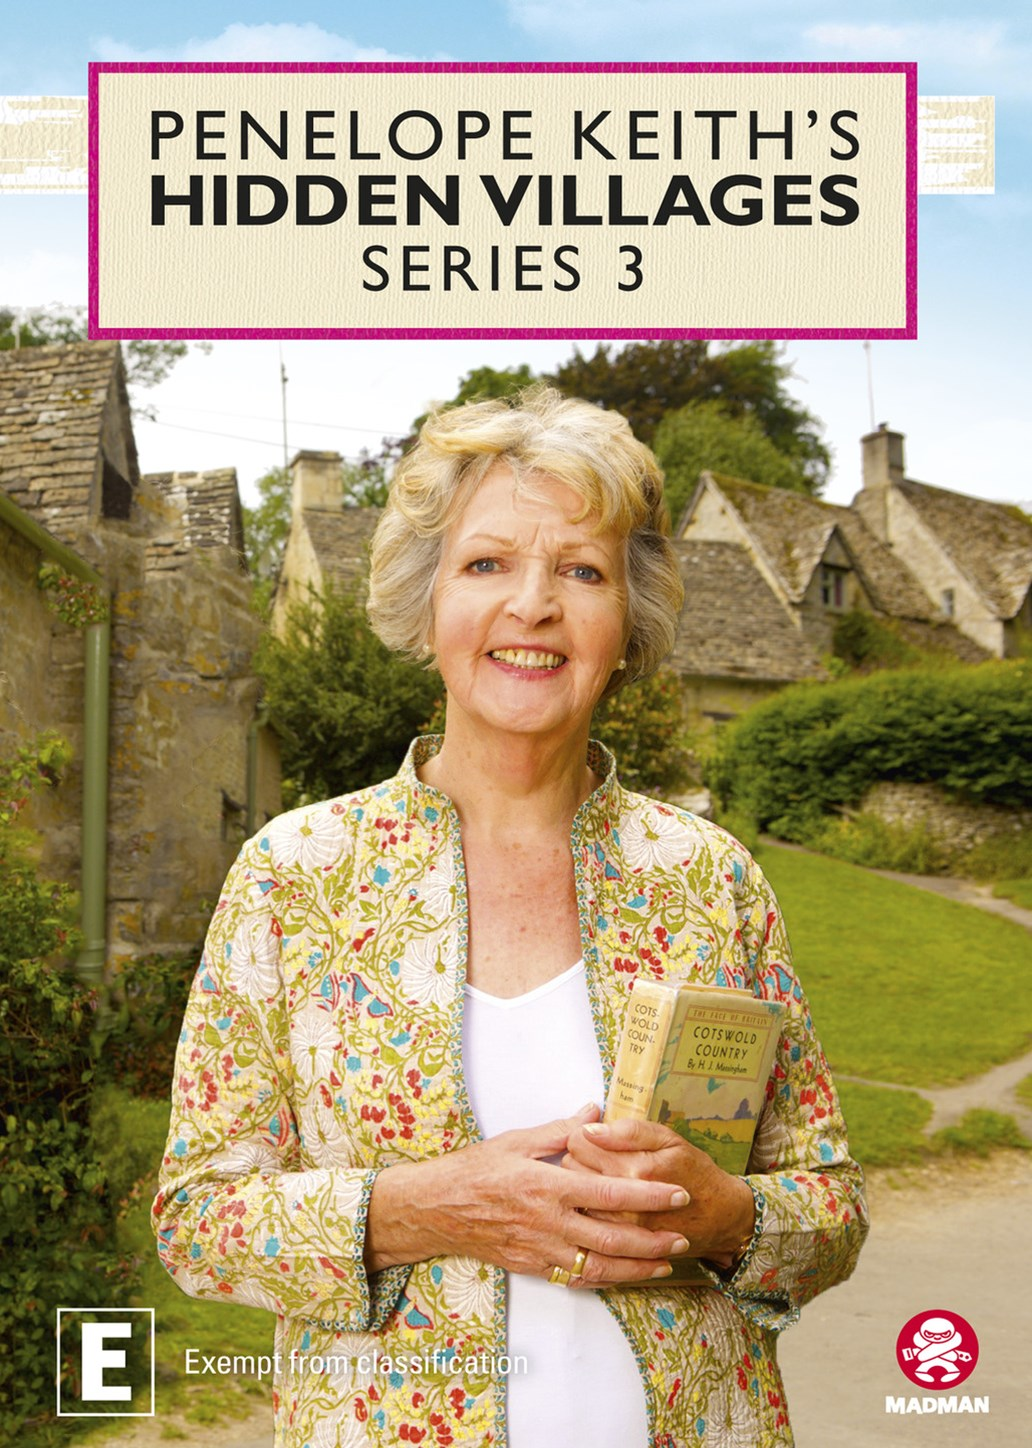 Penelope Keith's Hidden Villages: Series 3